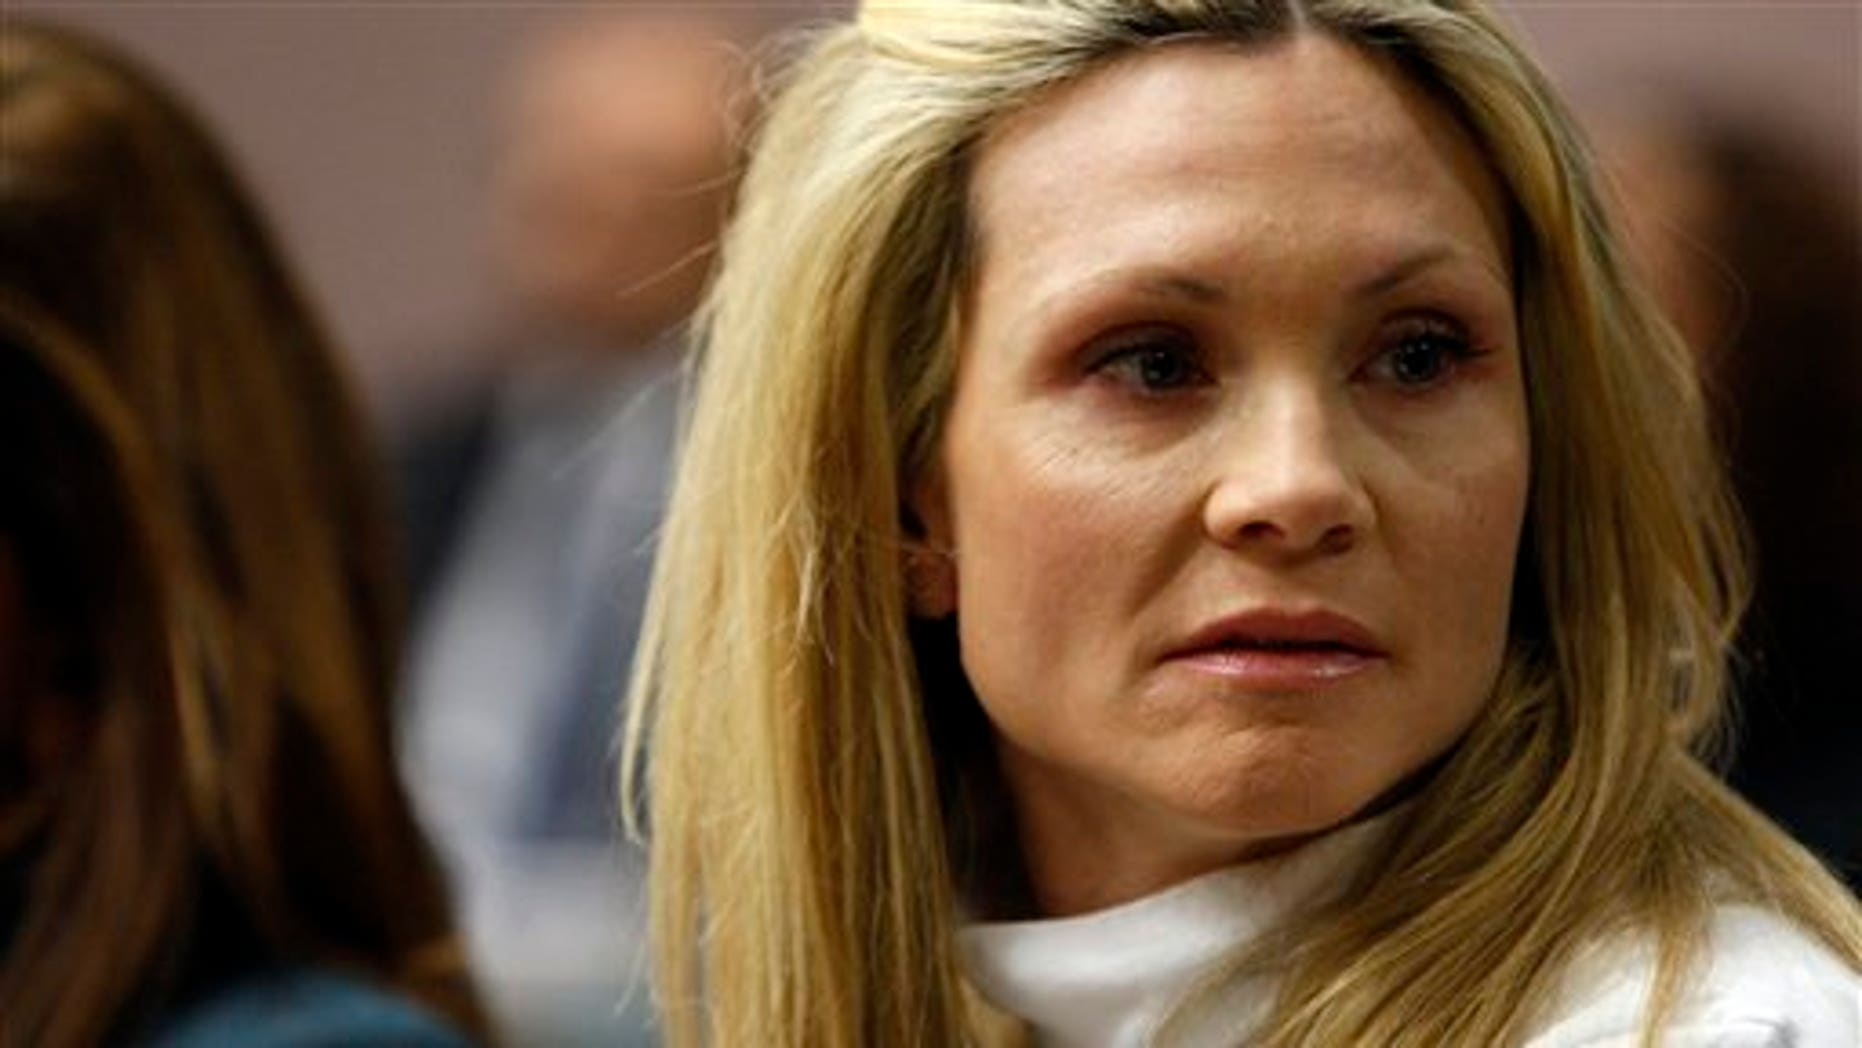 Amy Locane Melrose Place Pictures melrose place' actress amy locane-bovenizer gets 3 years in